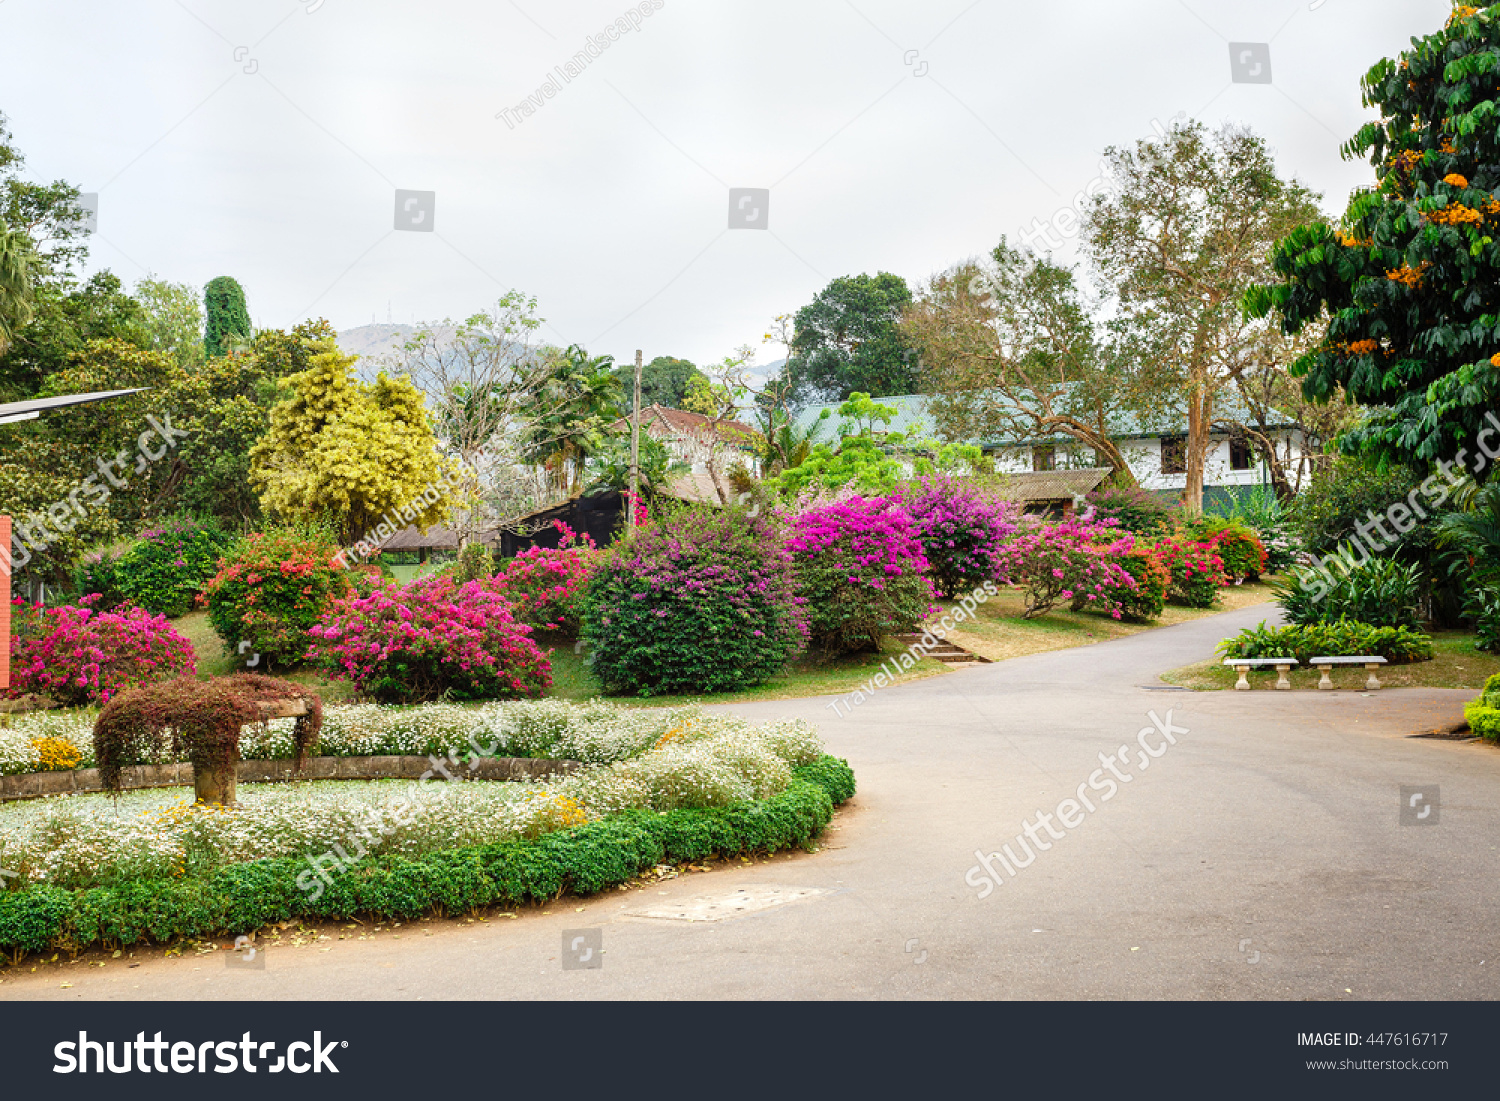 Beautiful flowers landscapes peradeniya sri lanka stock photo safe beautiful flowers landscapes in peradeniya sri lanka izmirmasajfo